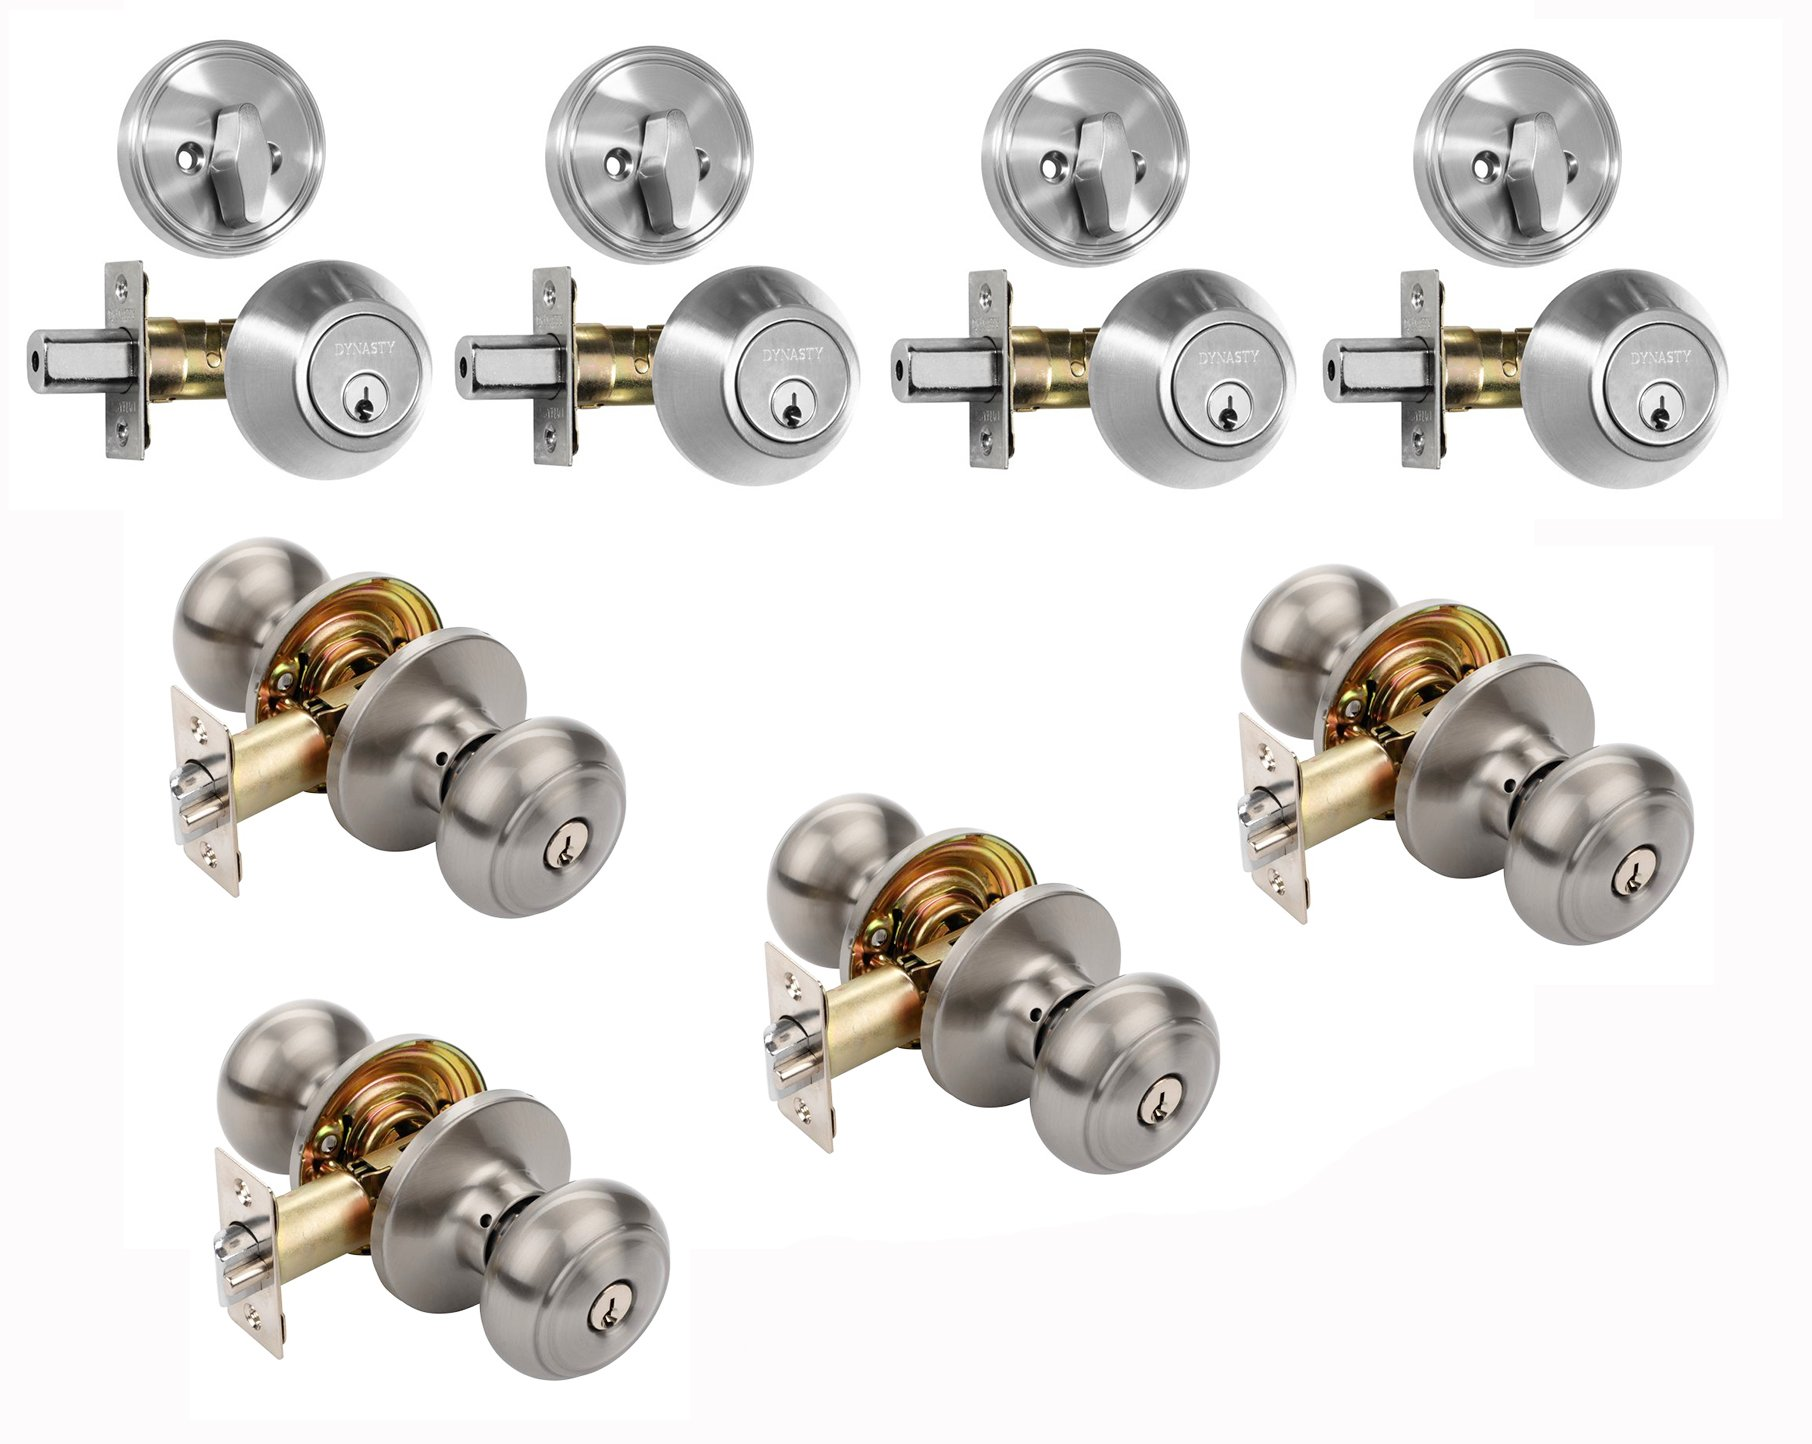 Sierra Entry Door Knob Lockset U0026 Deadbolt, Satin Nickel (4 Pack) Keyed Alike